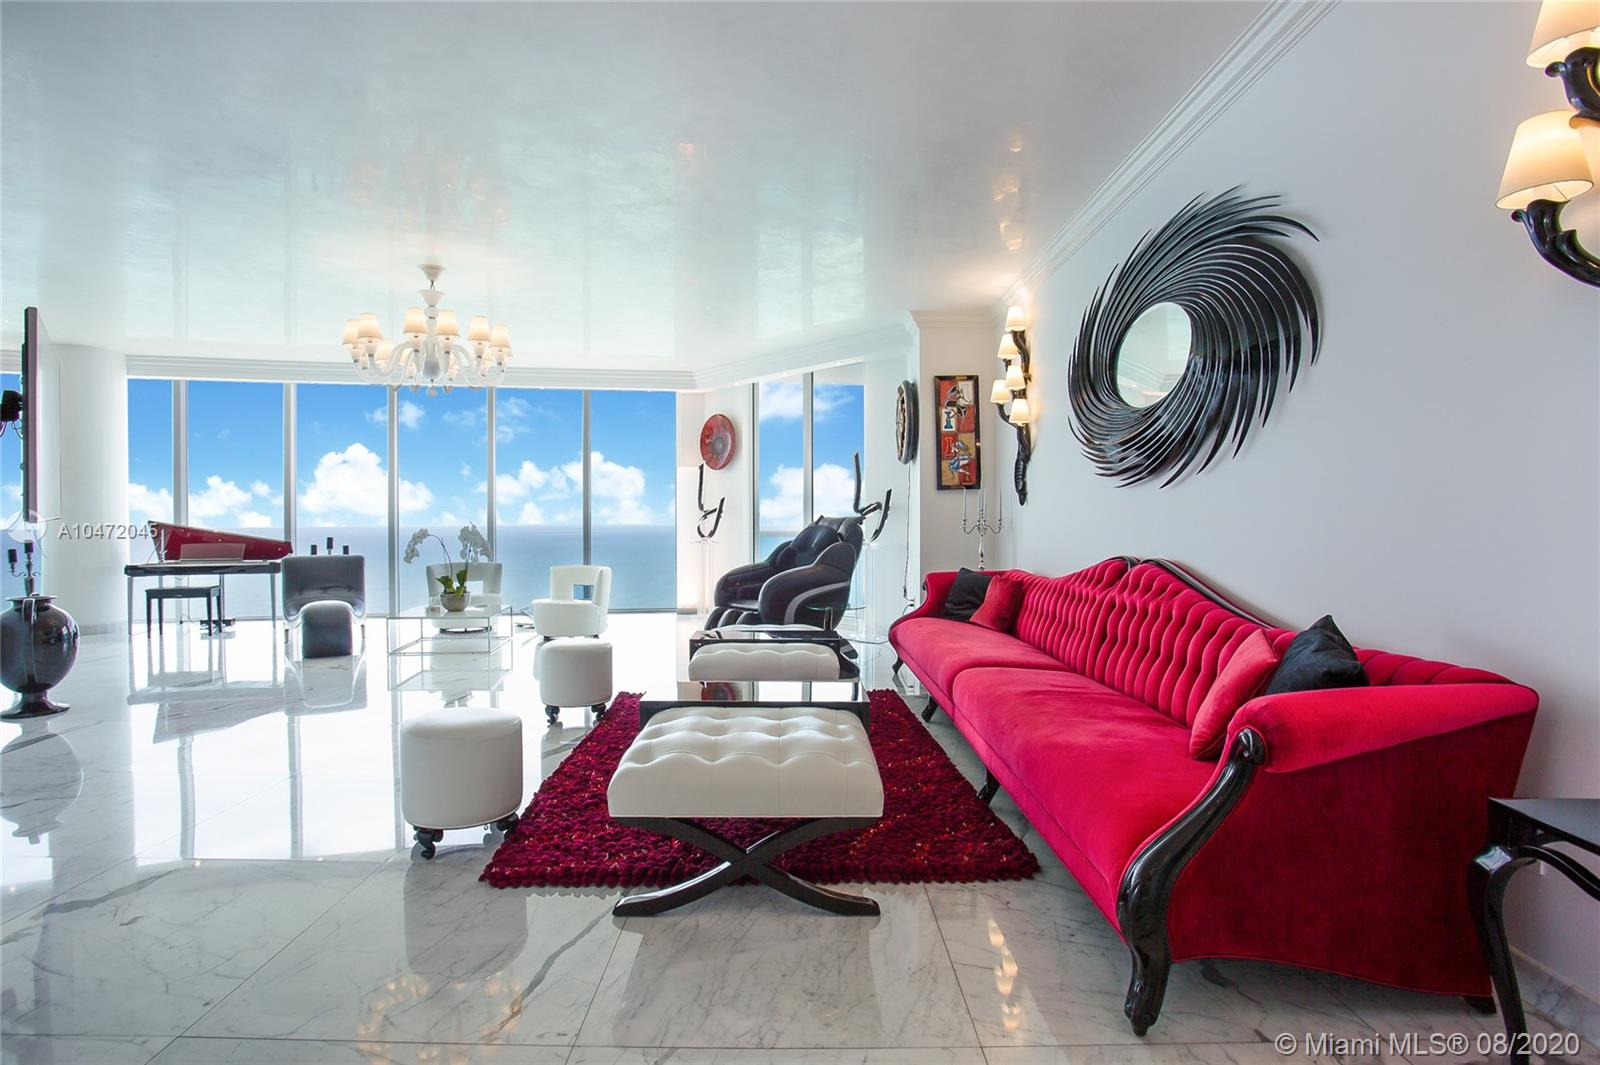 Spectacular Turn Key SKY VILLA! Ultra Modern/Fully Furnished unit! Panoramic Direct SE Ocean Views & Miami Sky Line. 11 Feet ceilings, 5 Bedroom+ office+ media-family room+ Maid quarter/ Laundry!  Master Suite with His and Hers Bathroom, Steam, Jacuzzi, Mirror/TV. Smart Home, Security Camera, Brand new Bosche AC, Top of the line Kitchen. 2 parking spaces. 5 Star Resort Amenities: State of the Art Fitness Center & SPA, Social Room, Tennis Court, Beach & Pool Service, Restaurant, Security, Valet.